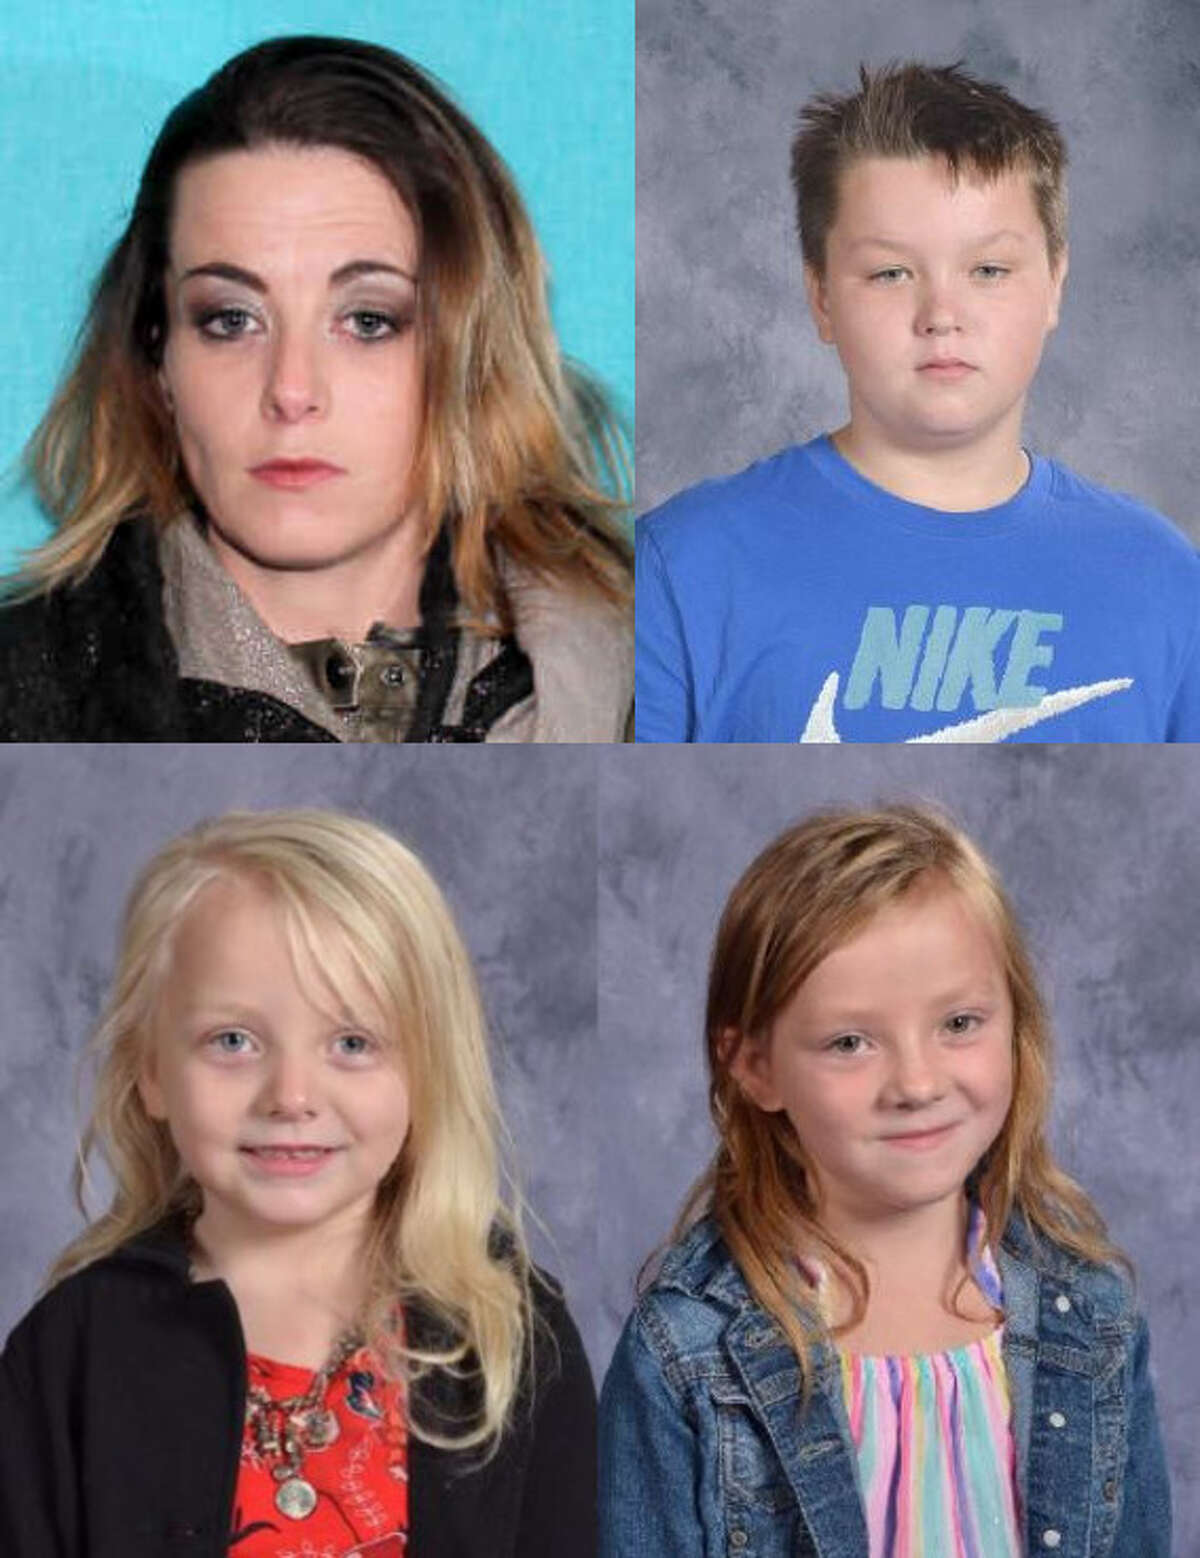 On Saturday, police said that the three children who had been missing from Manistee after their motherKimberly Berrentine, fled, have been found. A court order to remove the children from her care was issued that day. One child was found on April 23 in Midland. (Courtesy photos)